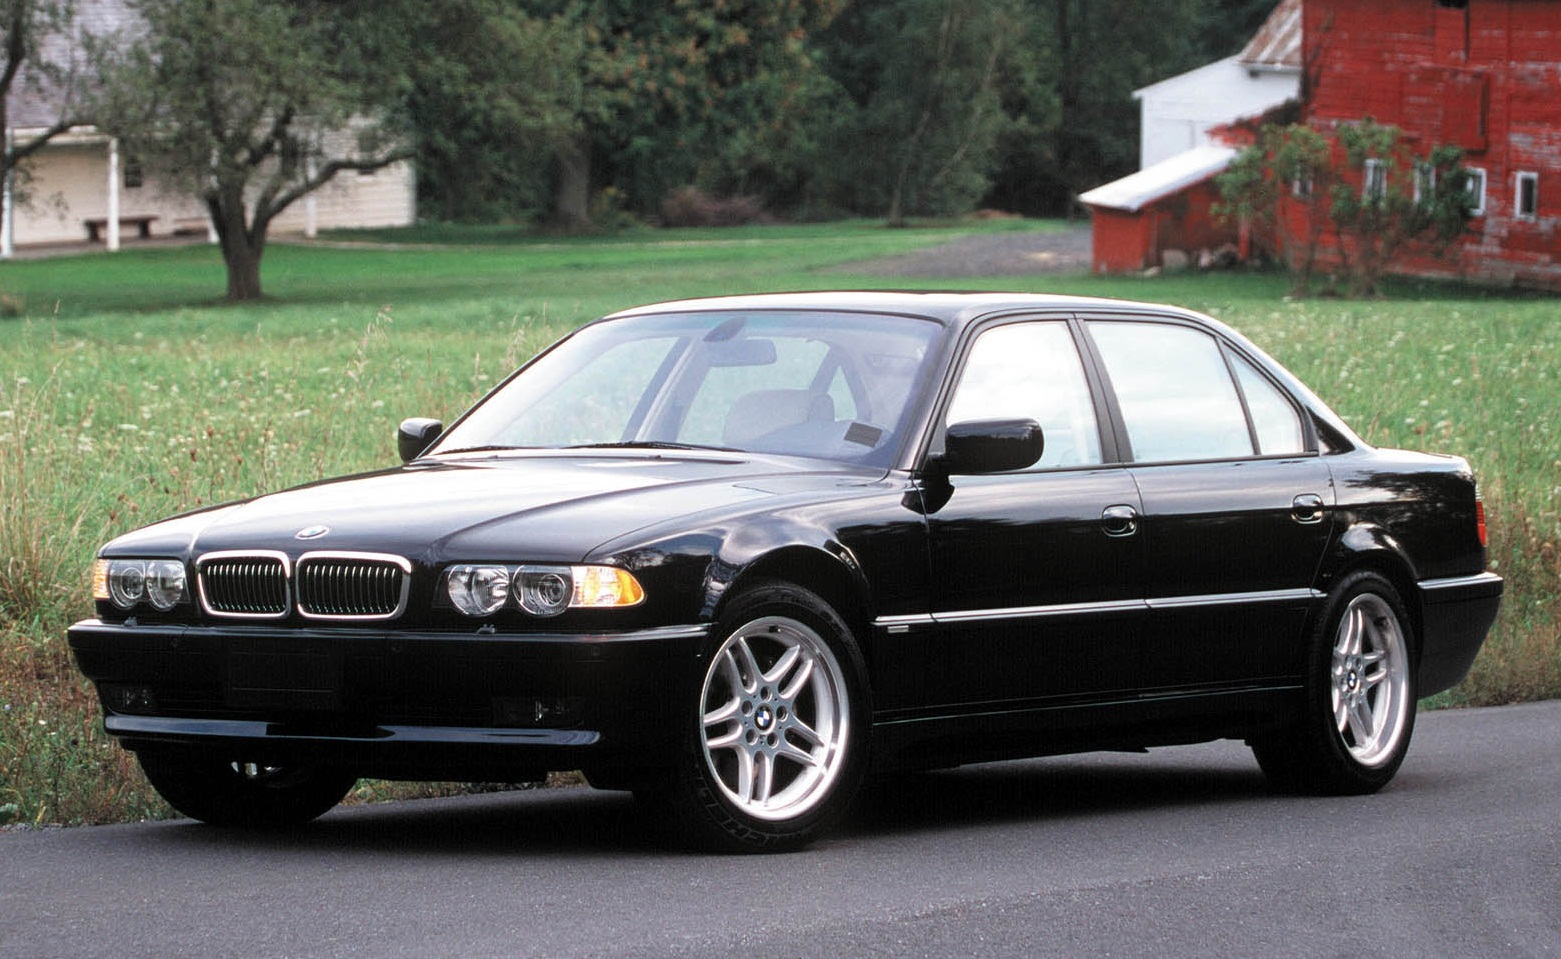 hight resolution of a bmw e38 as my next car what do you guys girls think over the e38